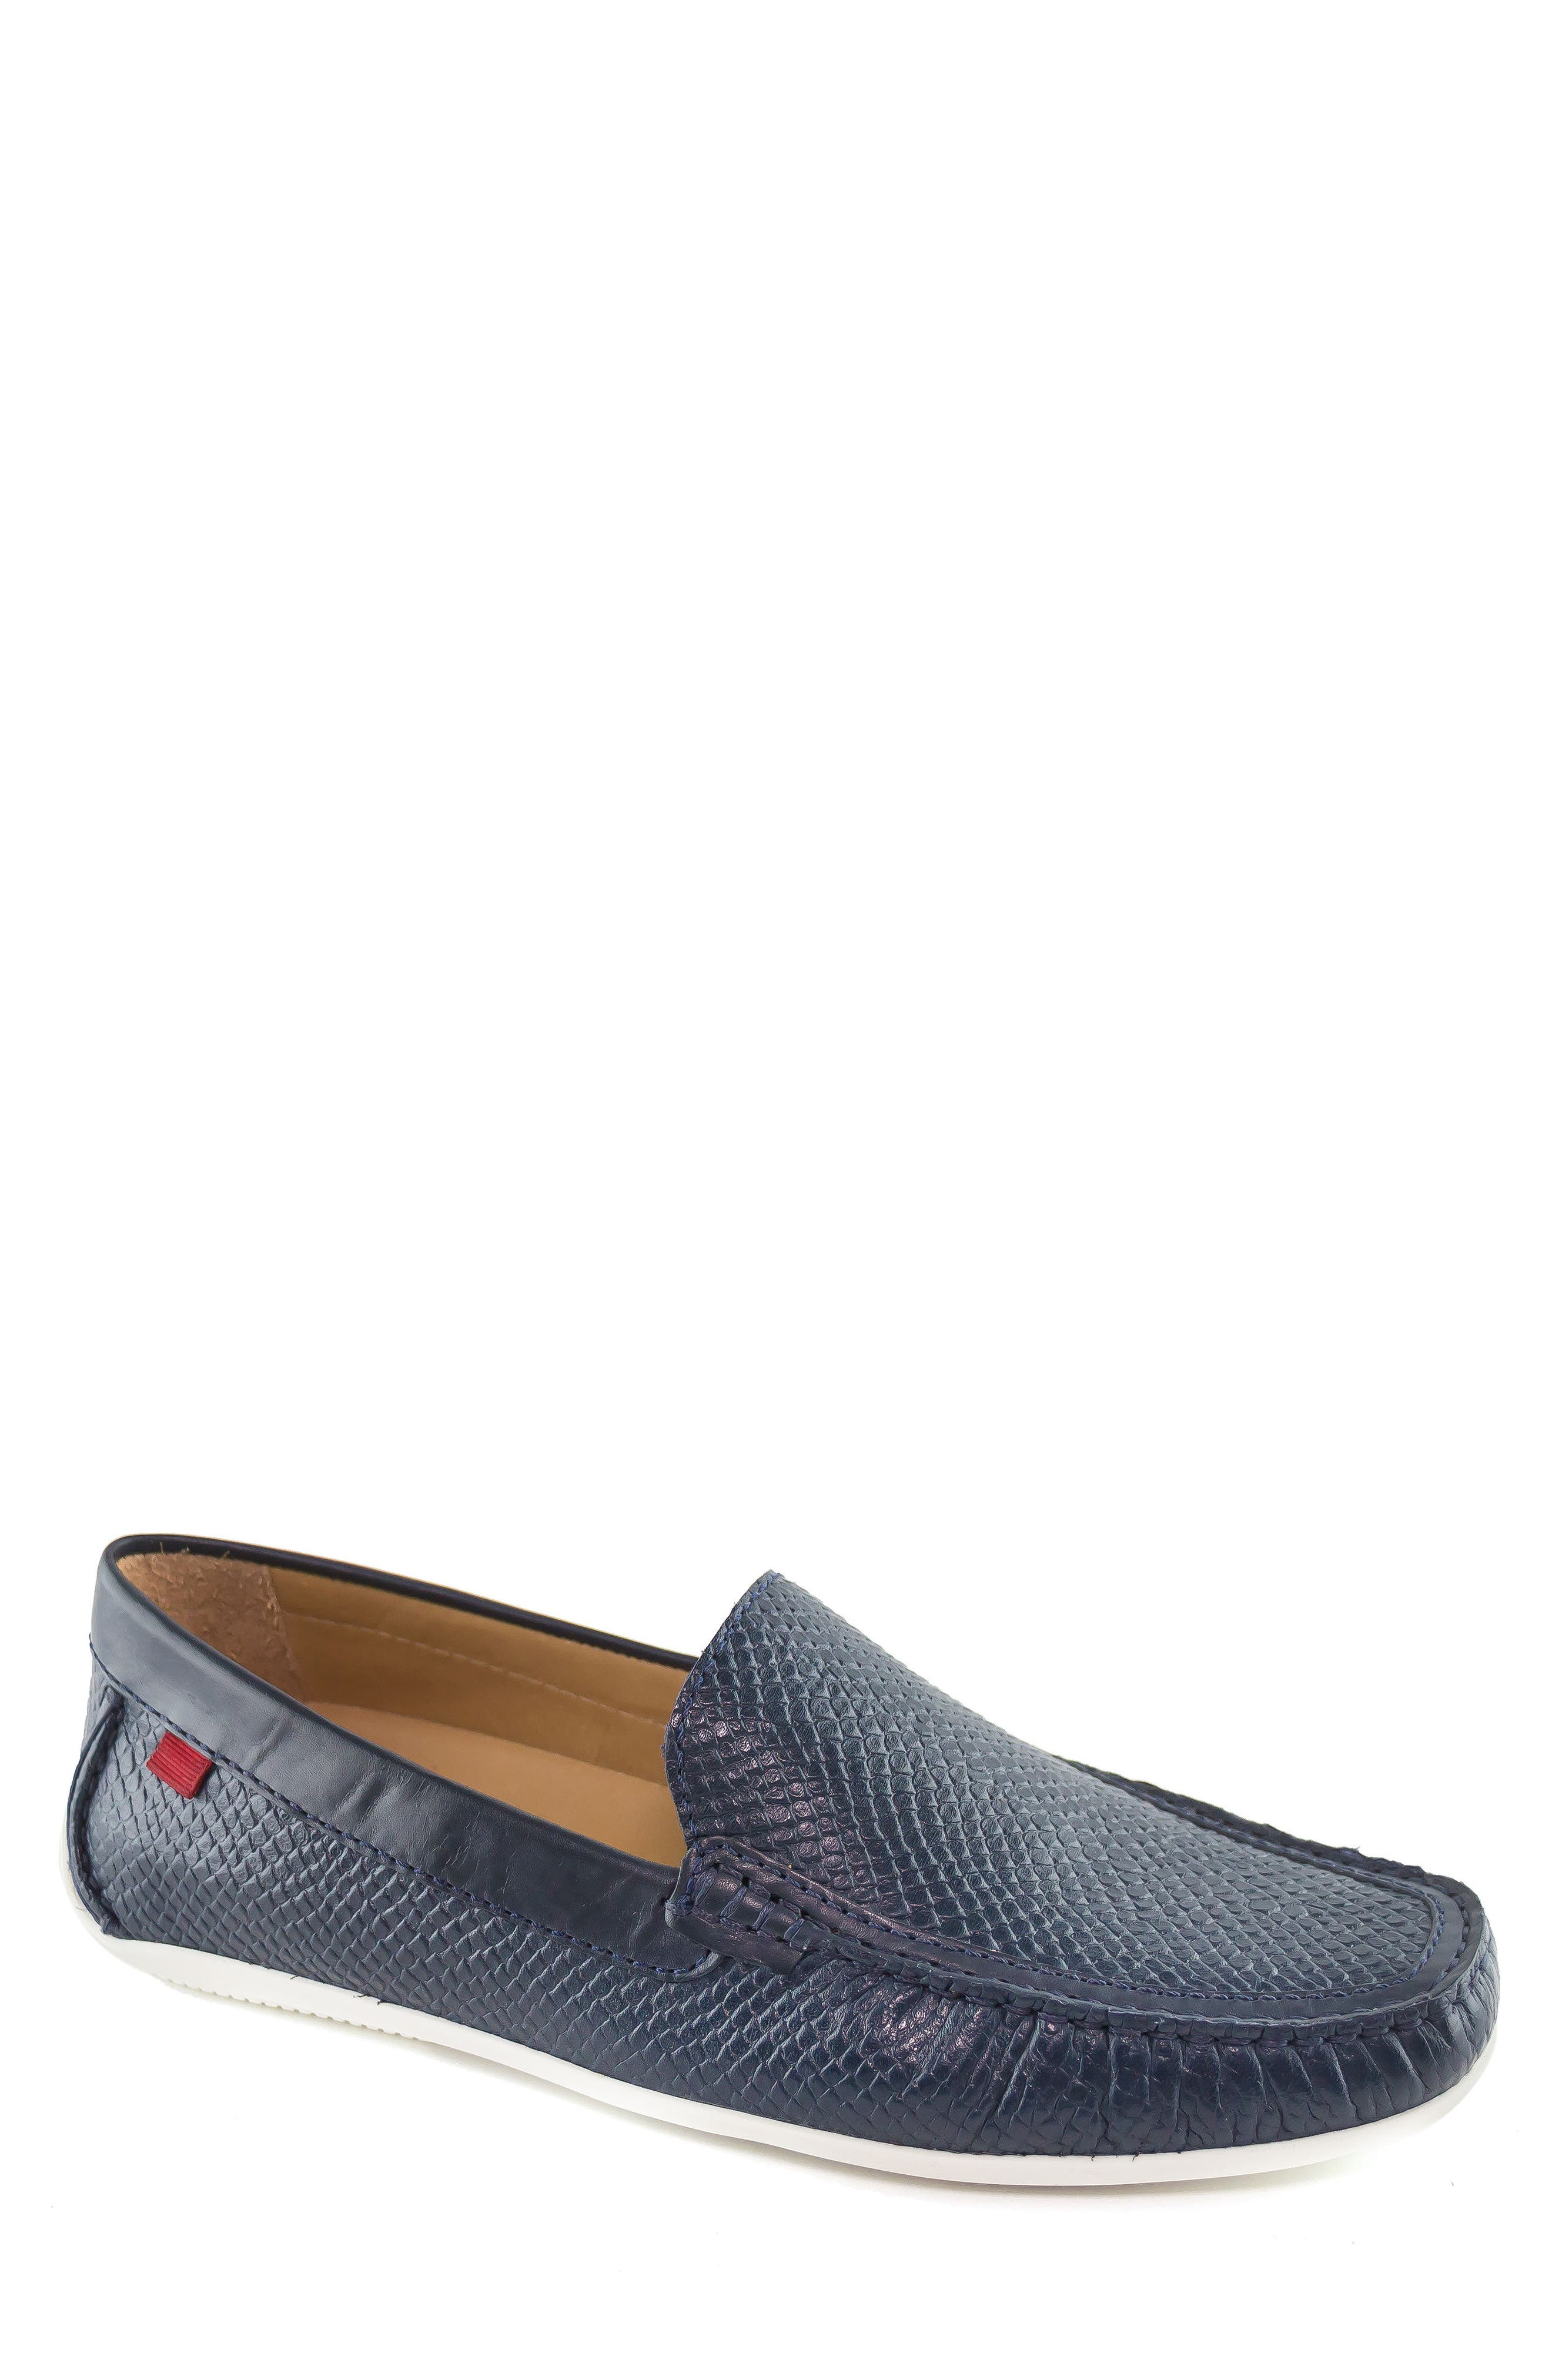 Broadway 2 Cobra Embossed Loafer,                             Main thumbnail 1, color,                             NAVY COBRA LEATHER